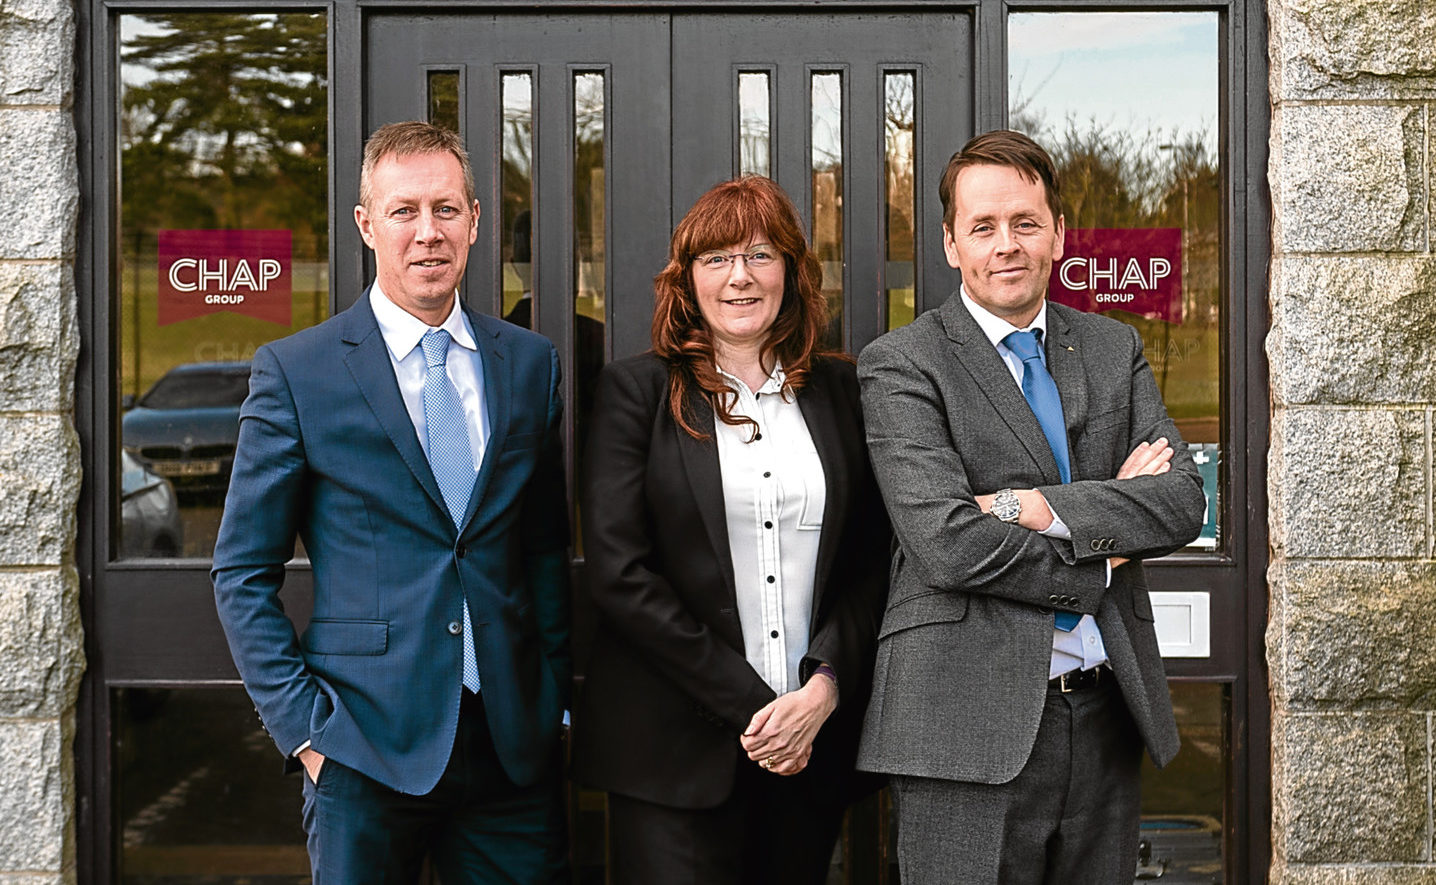 Hugh Craigie, right, managing director of Chap Group says his firm is gearing up for staff to safely return to work